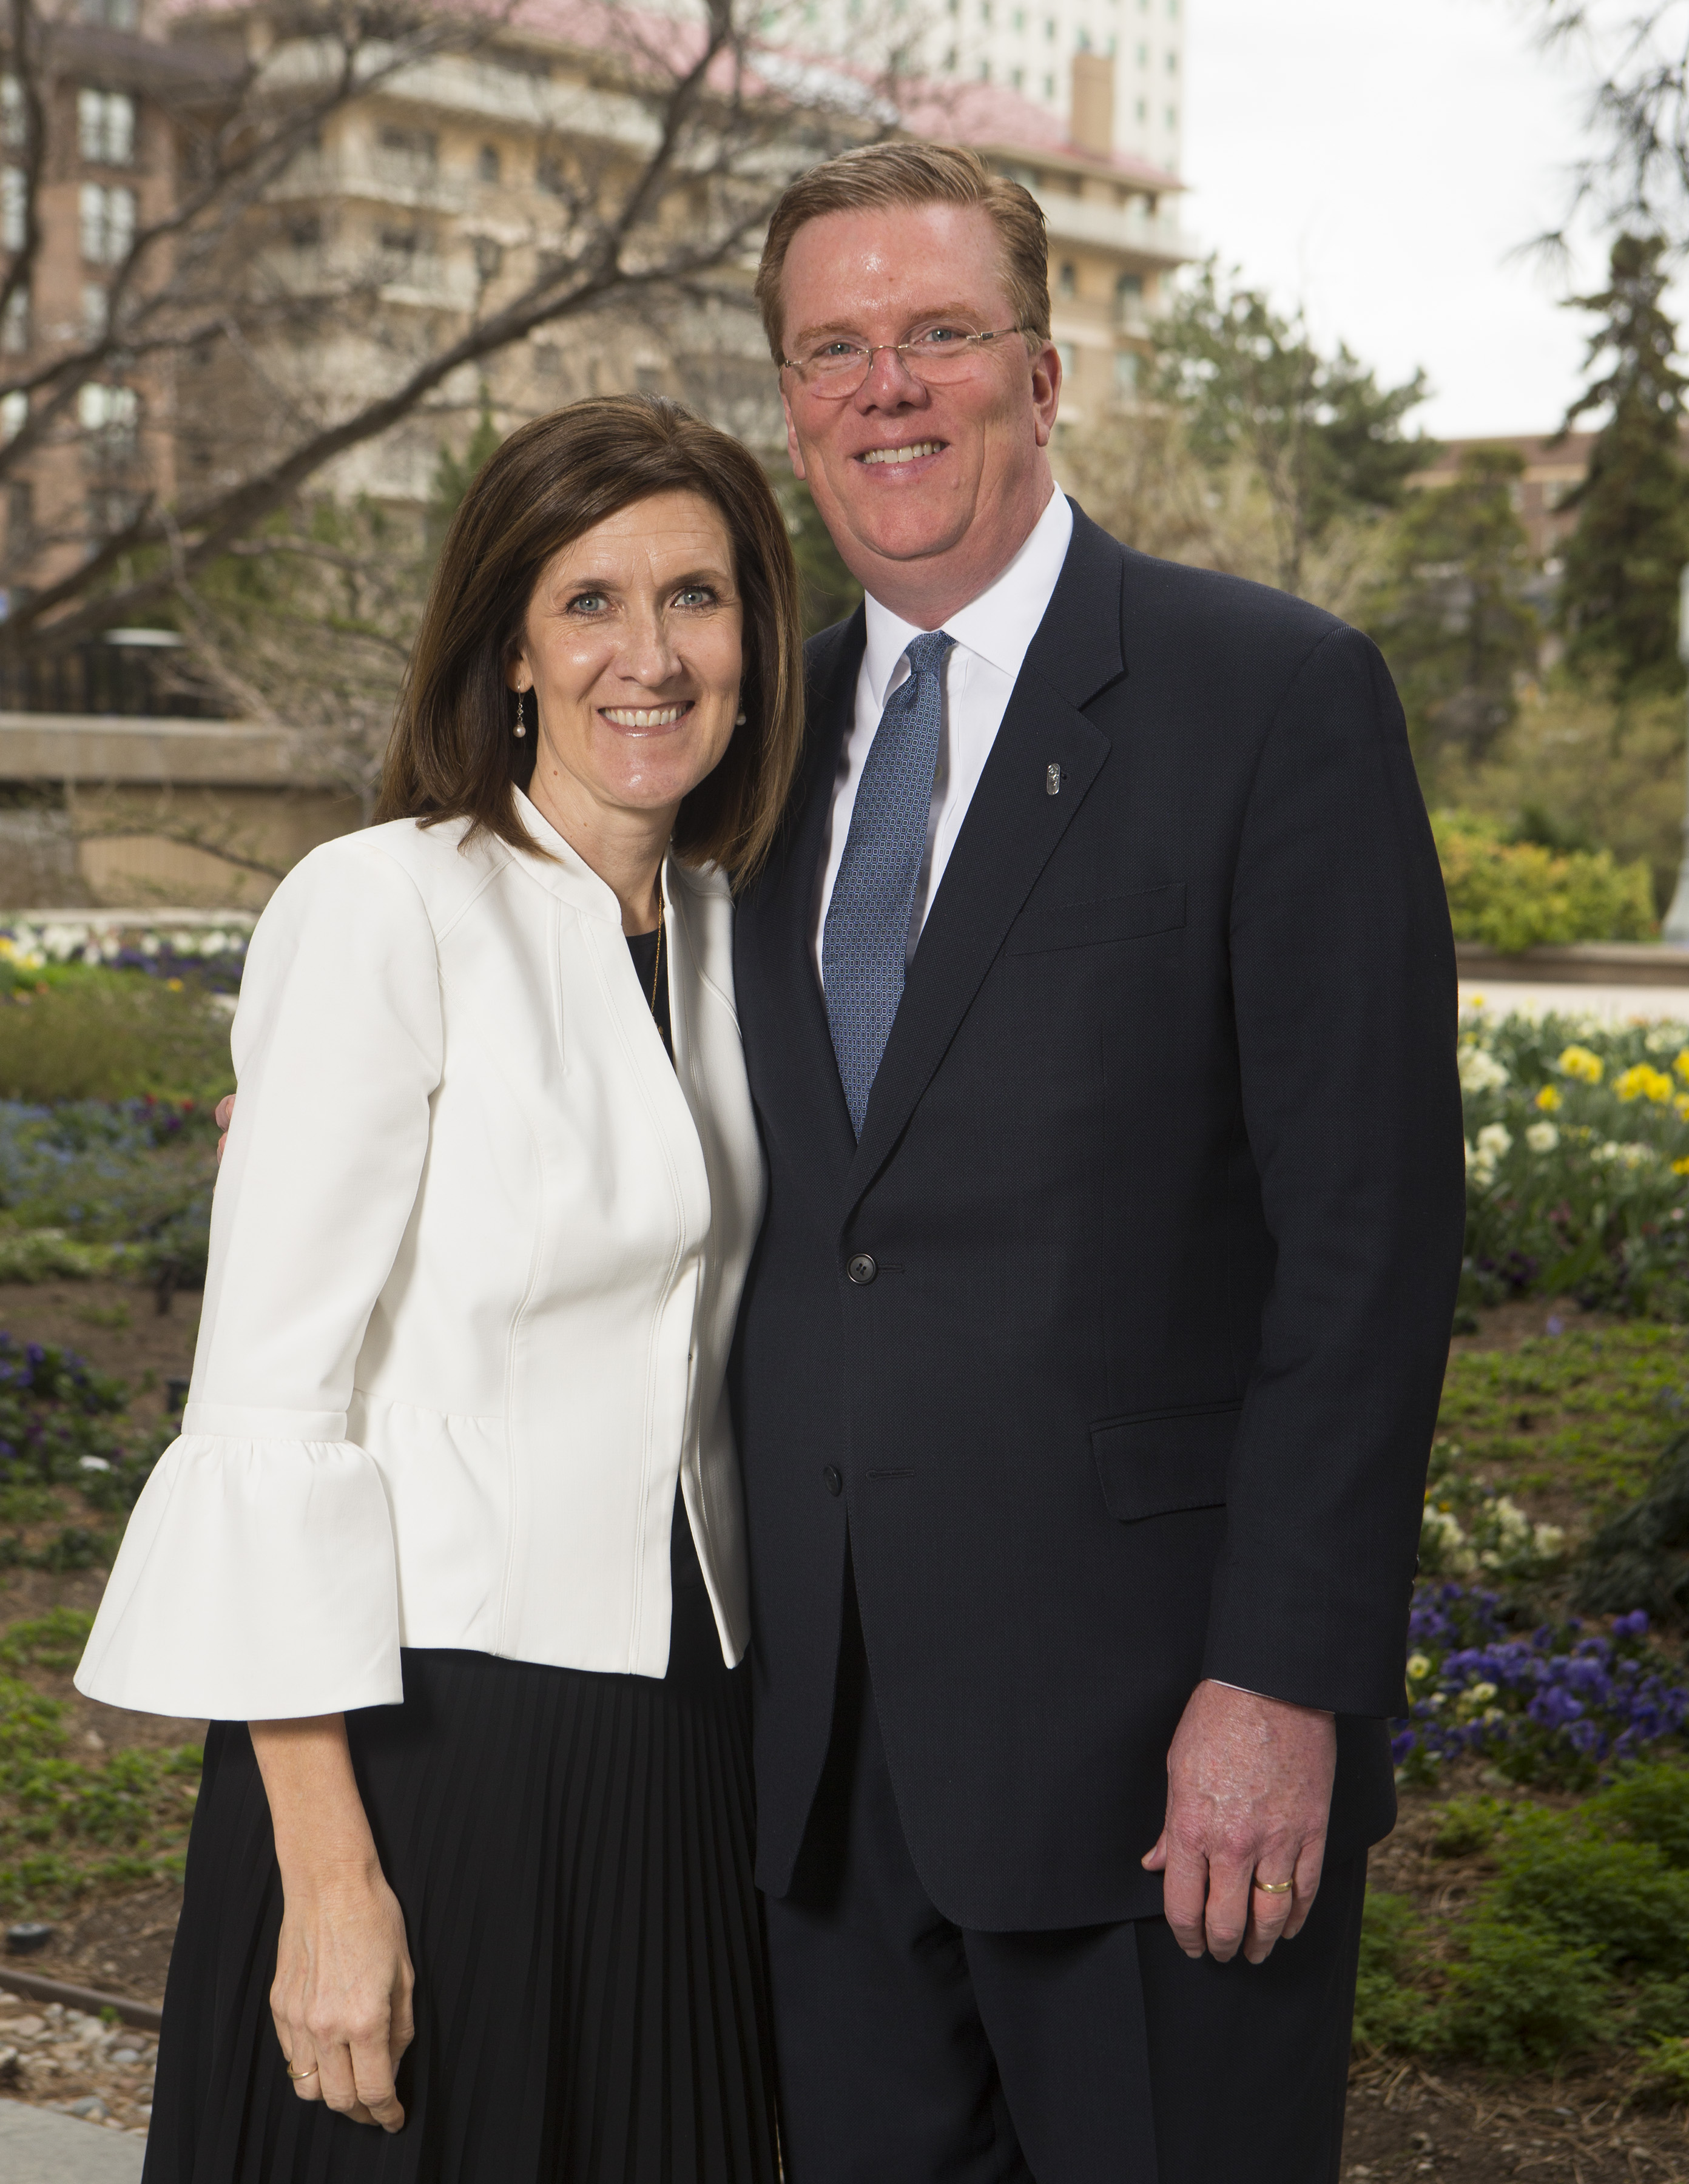 Sister Michelle D. Craig, first counselor in the Young Women general presidency, and her husband, Brother Boyd Craig.